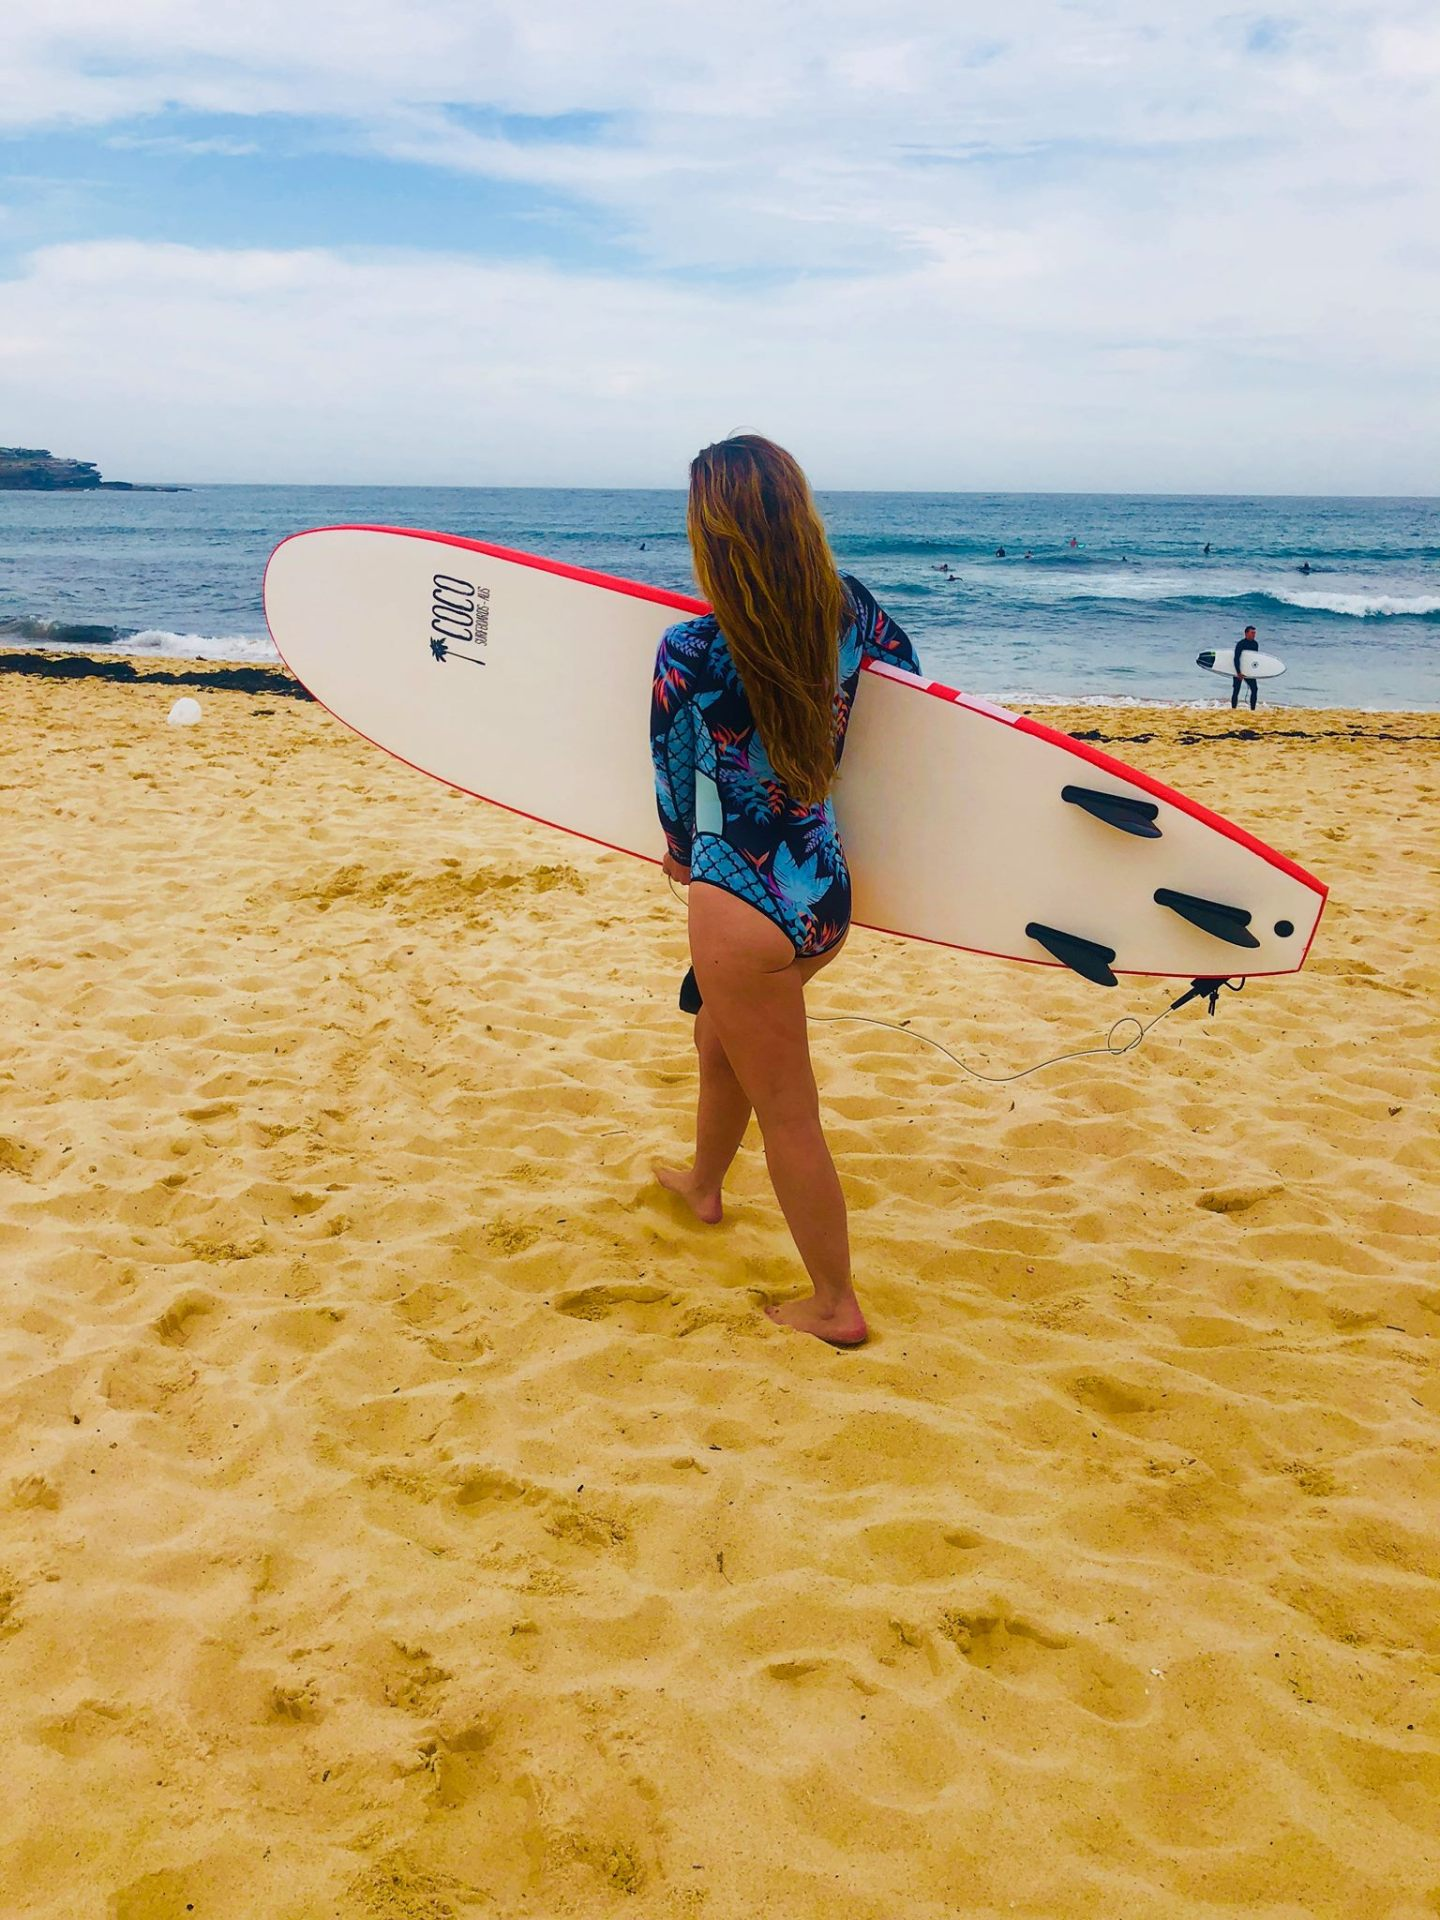 My first time surfing Bondi Beach with my own board